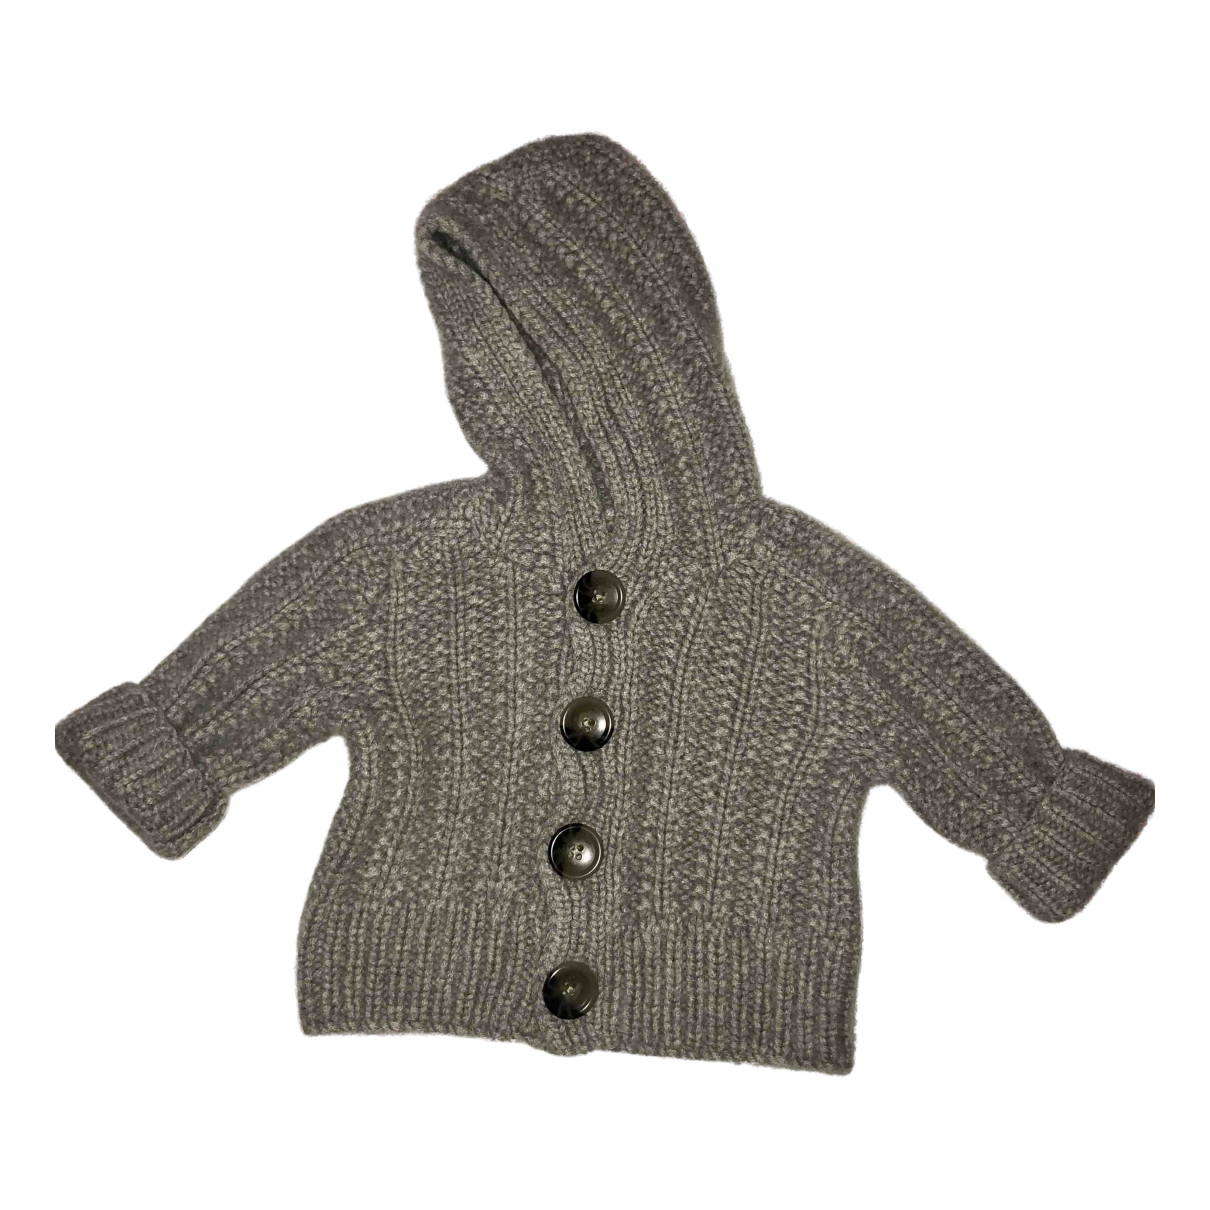 Banana Republic N Grey Cashmere Knitwear for Kids 3 months - up to 60cm FR